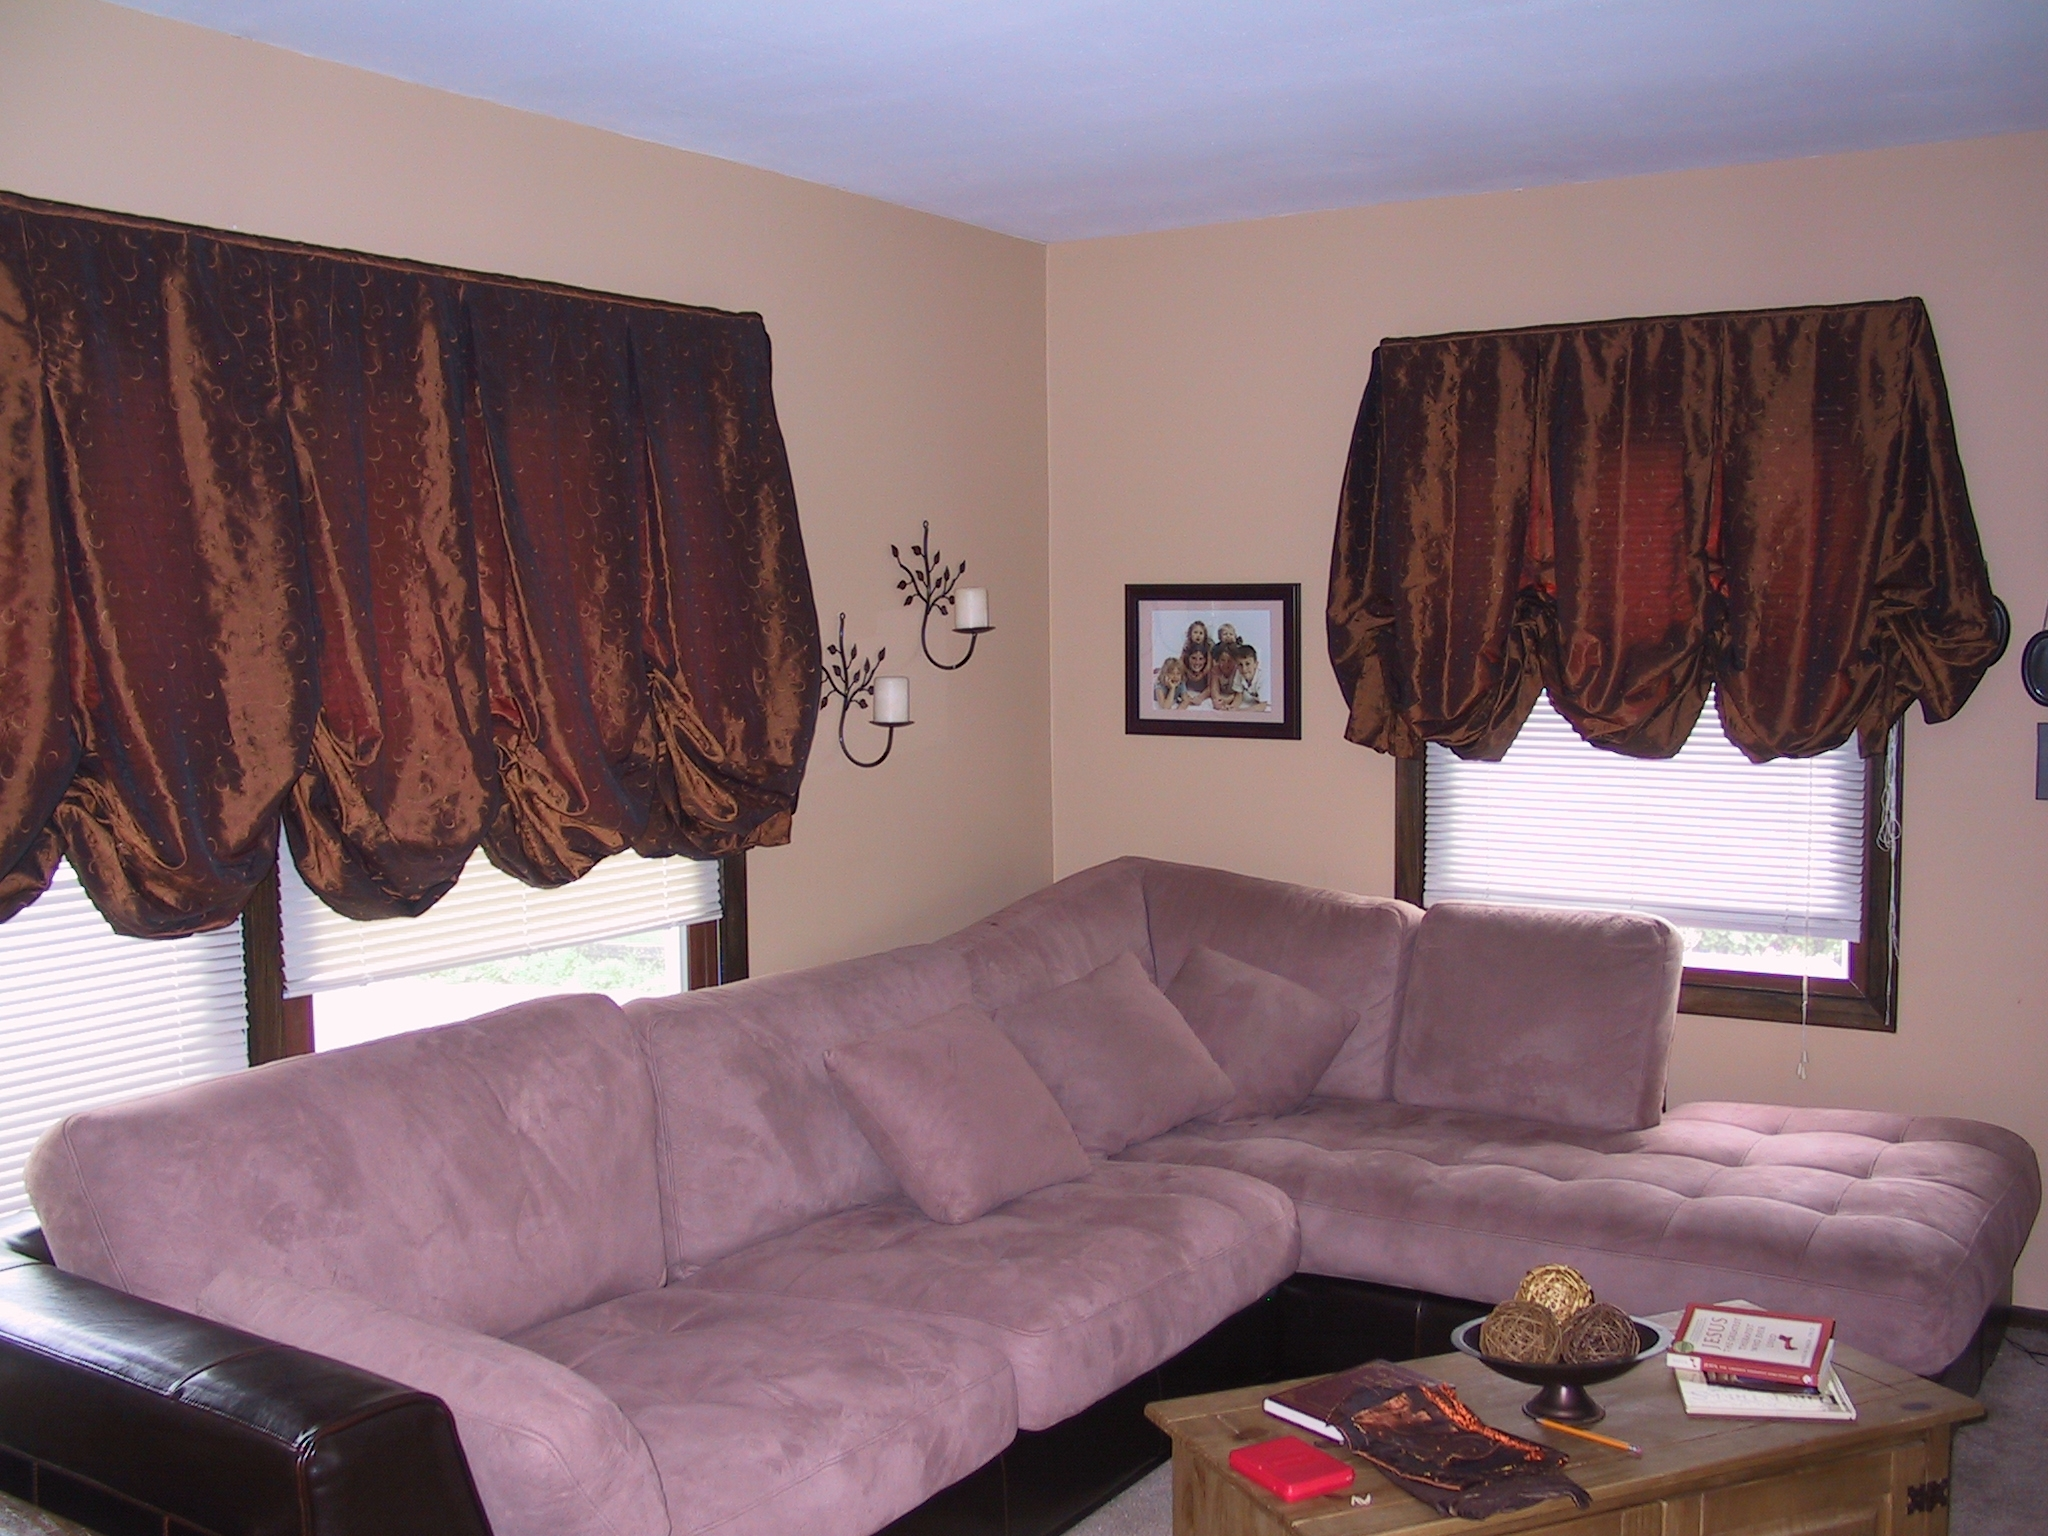 The client wanted simple, draped balloon curtains to soften the look of the room